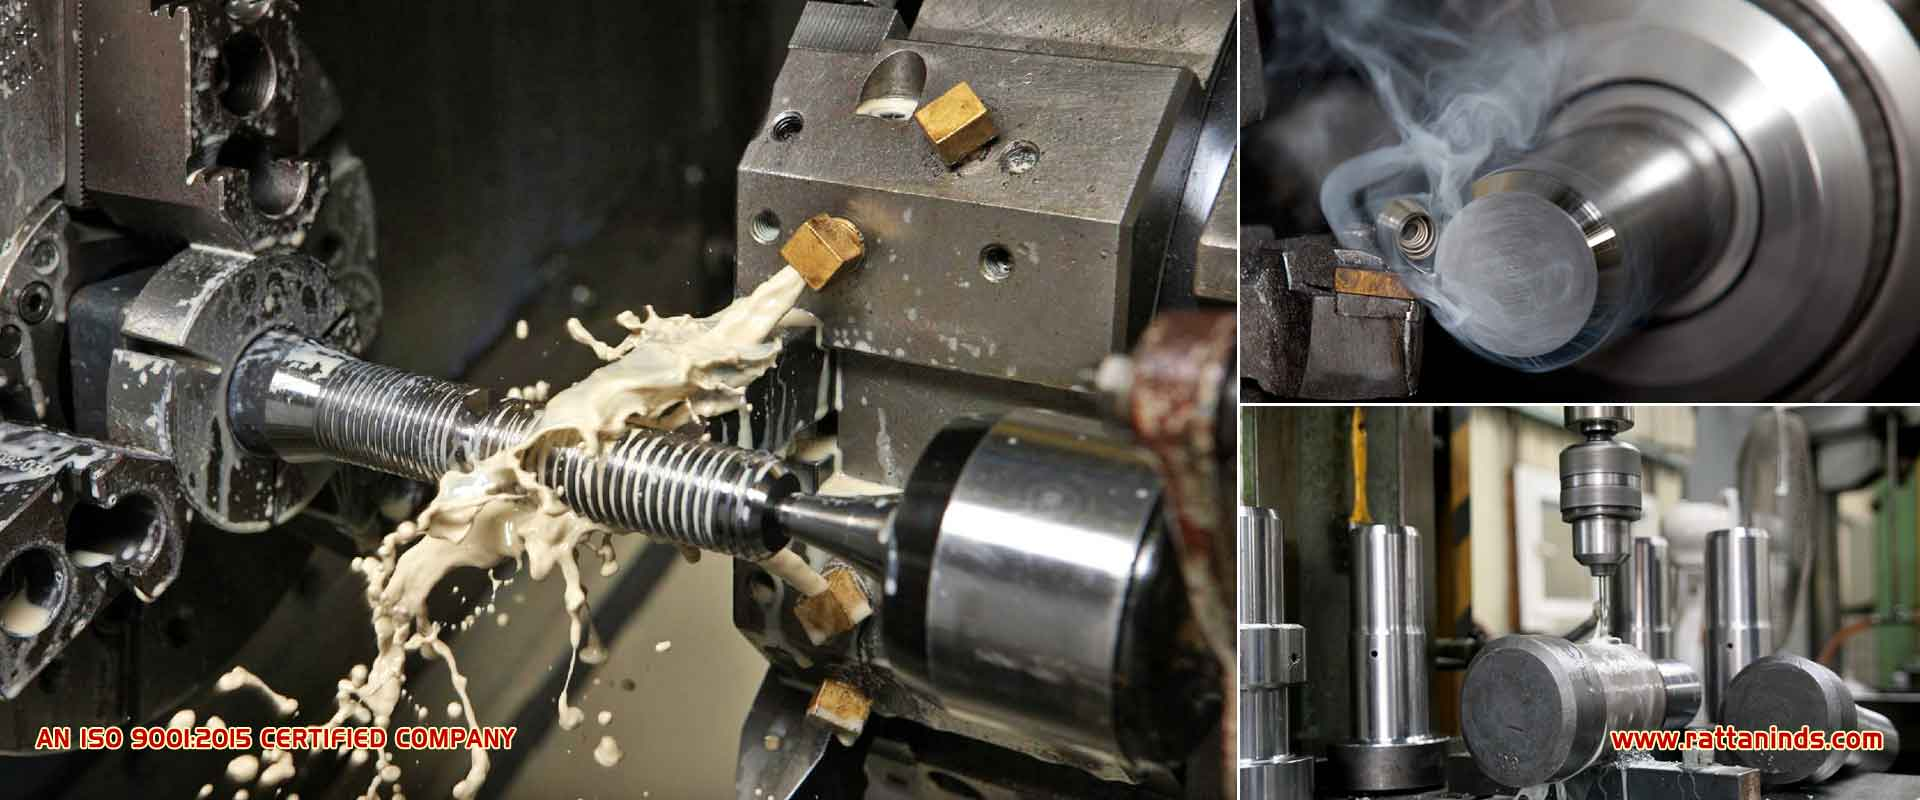 forged scaffolding forging coupler parts scaffold components manufacturers in india punjab ludhiana